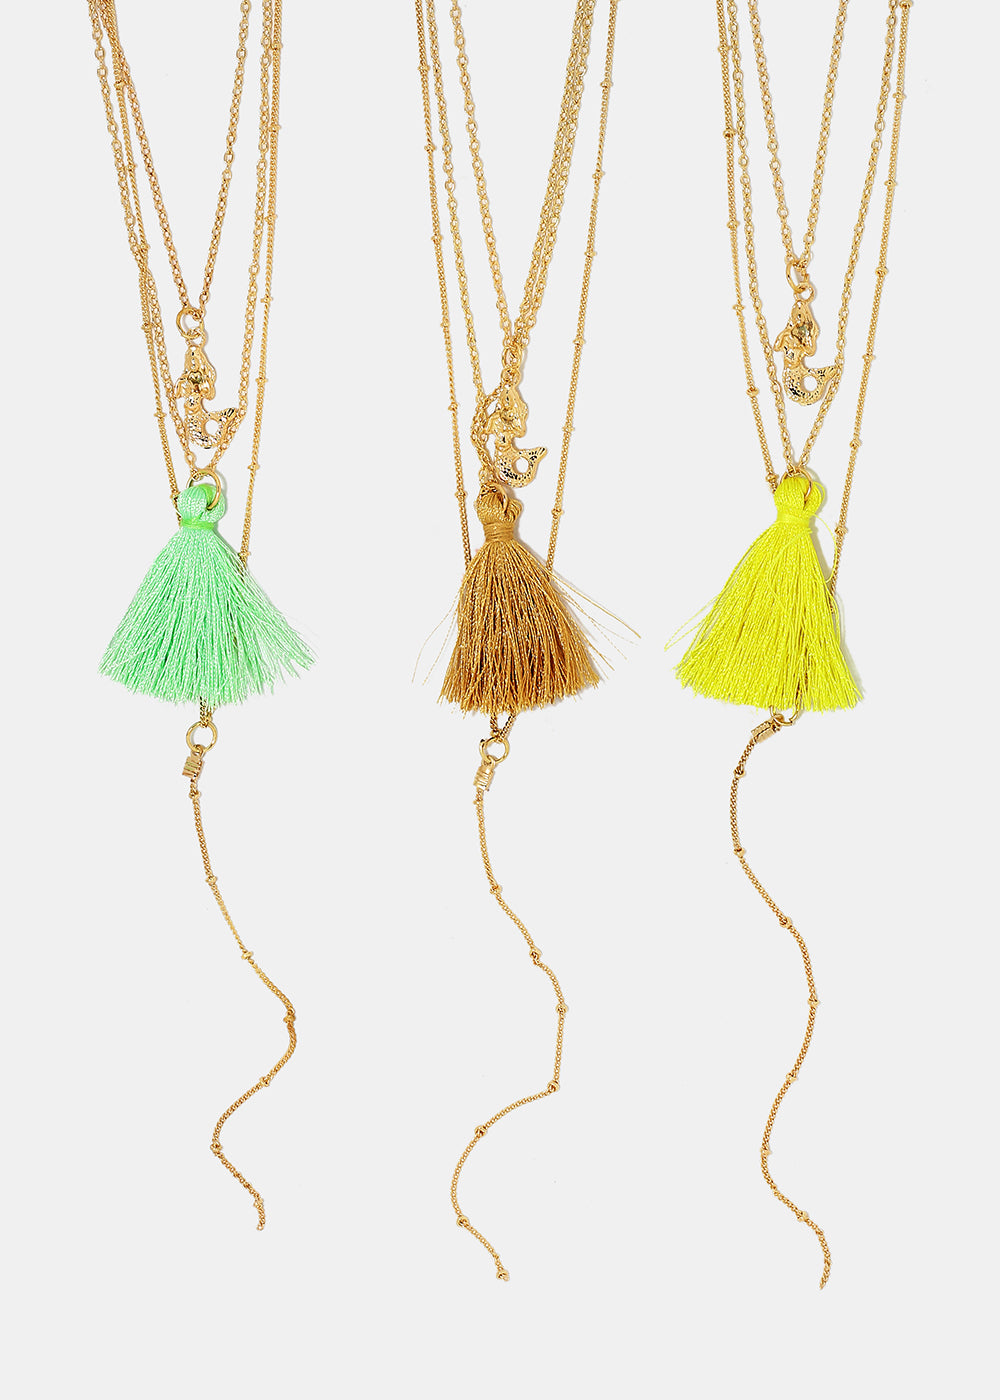 Layered Tassel & Mermaid Charm Necklace